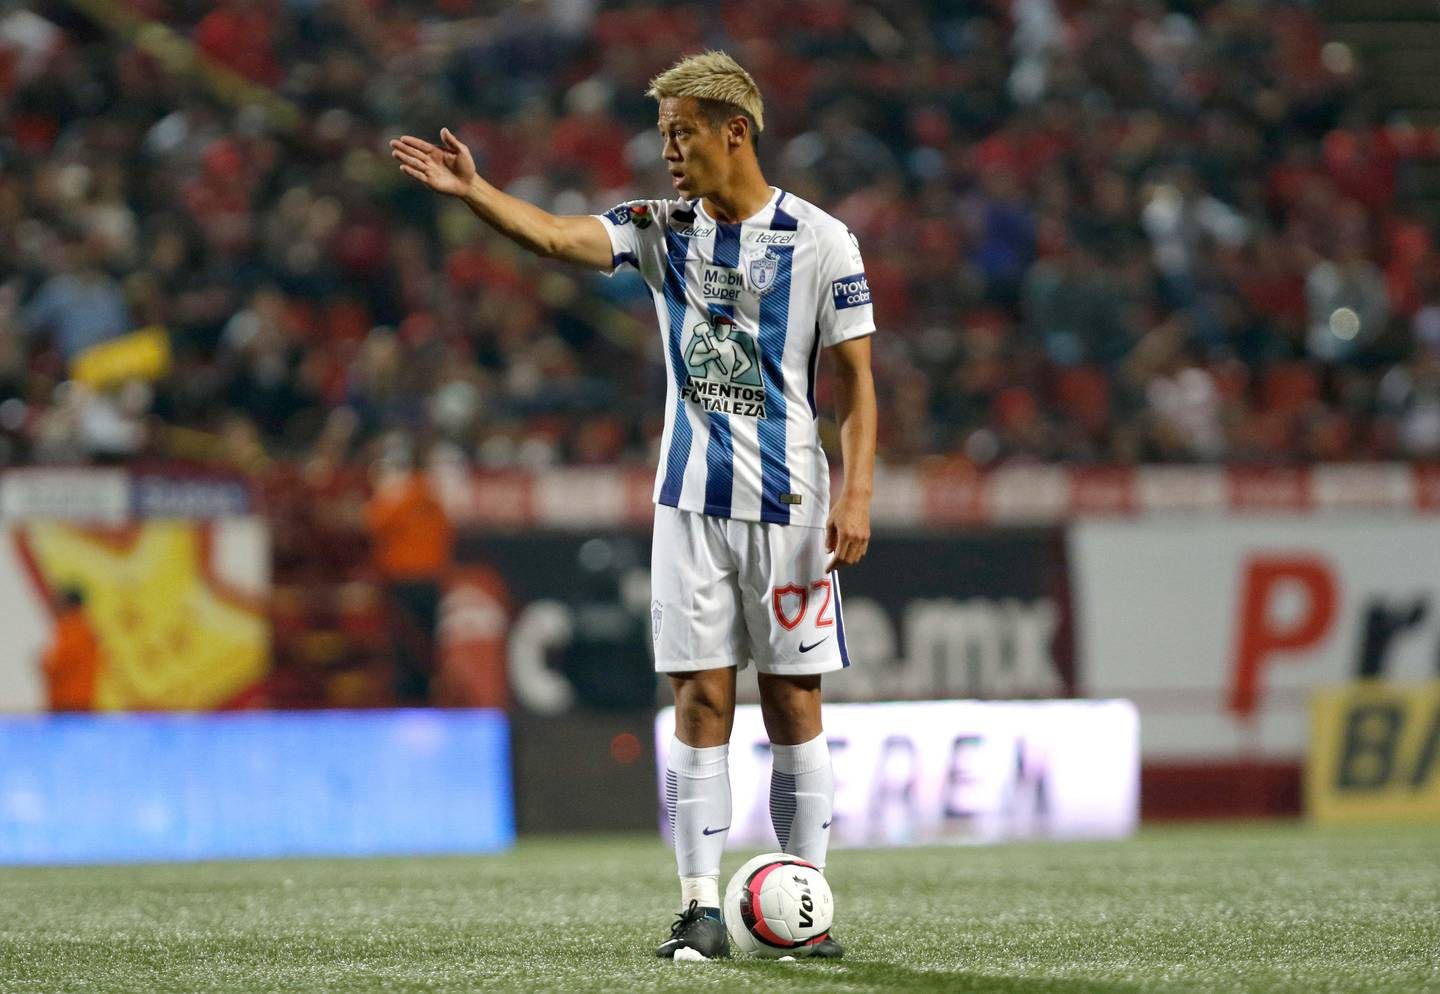 Pachuca`s midfielder Keisuke Honda of Japan gesticures during a Torneo Apertura 2017 Liga MX match against Tijuana at Caliente Stadium in Tijuana, Mexico on August 25, 2017. / AFP PHOTO / GUILLERMO ARIAS AND GUILLERMO ARIAS